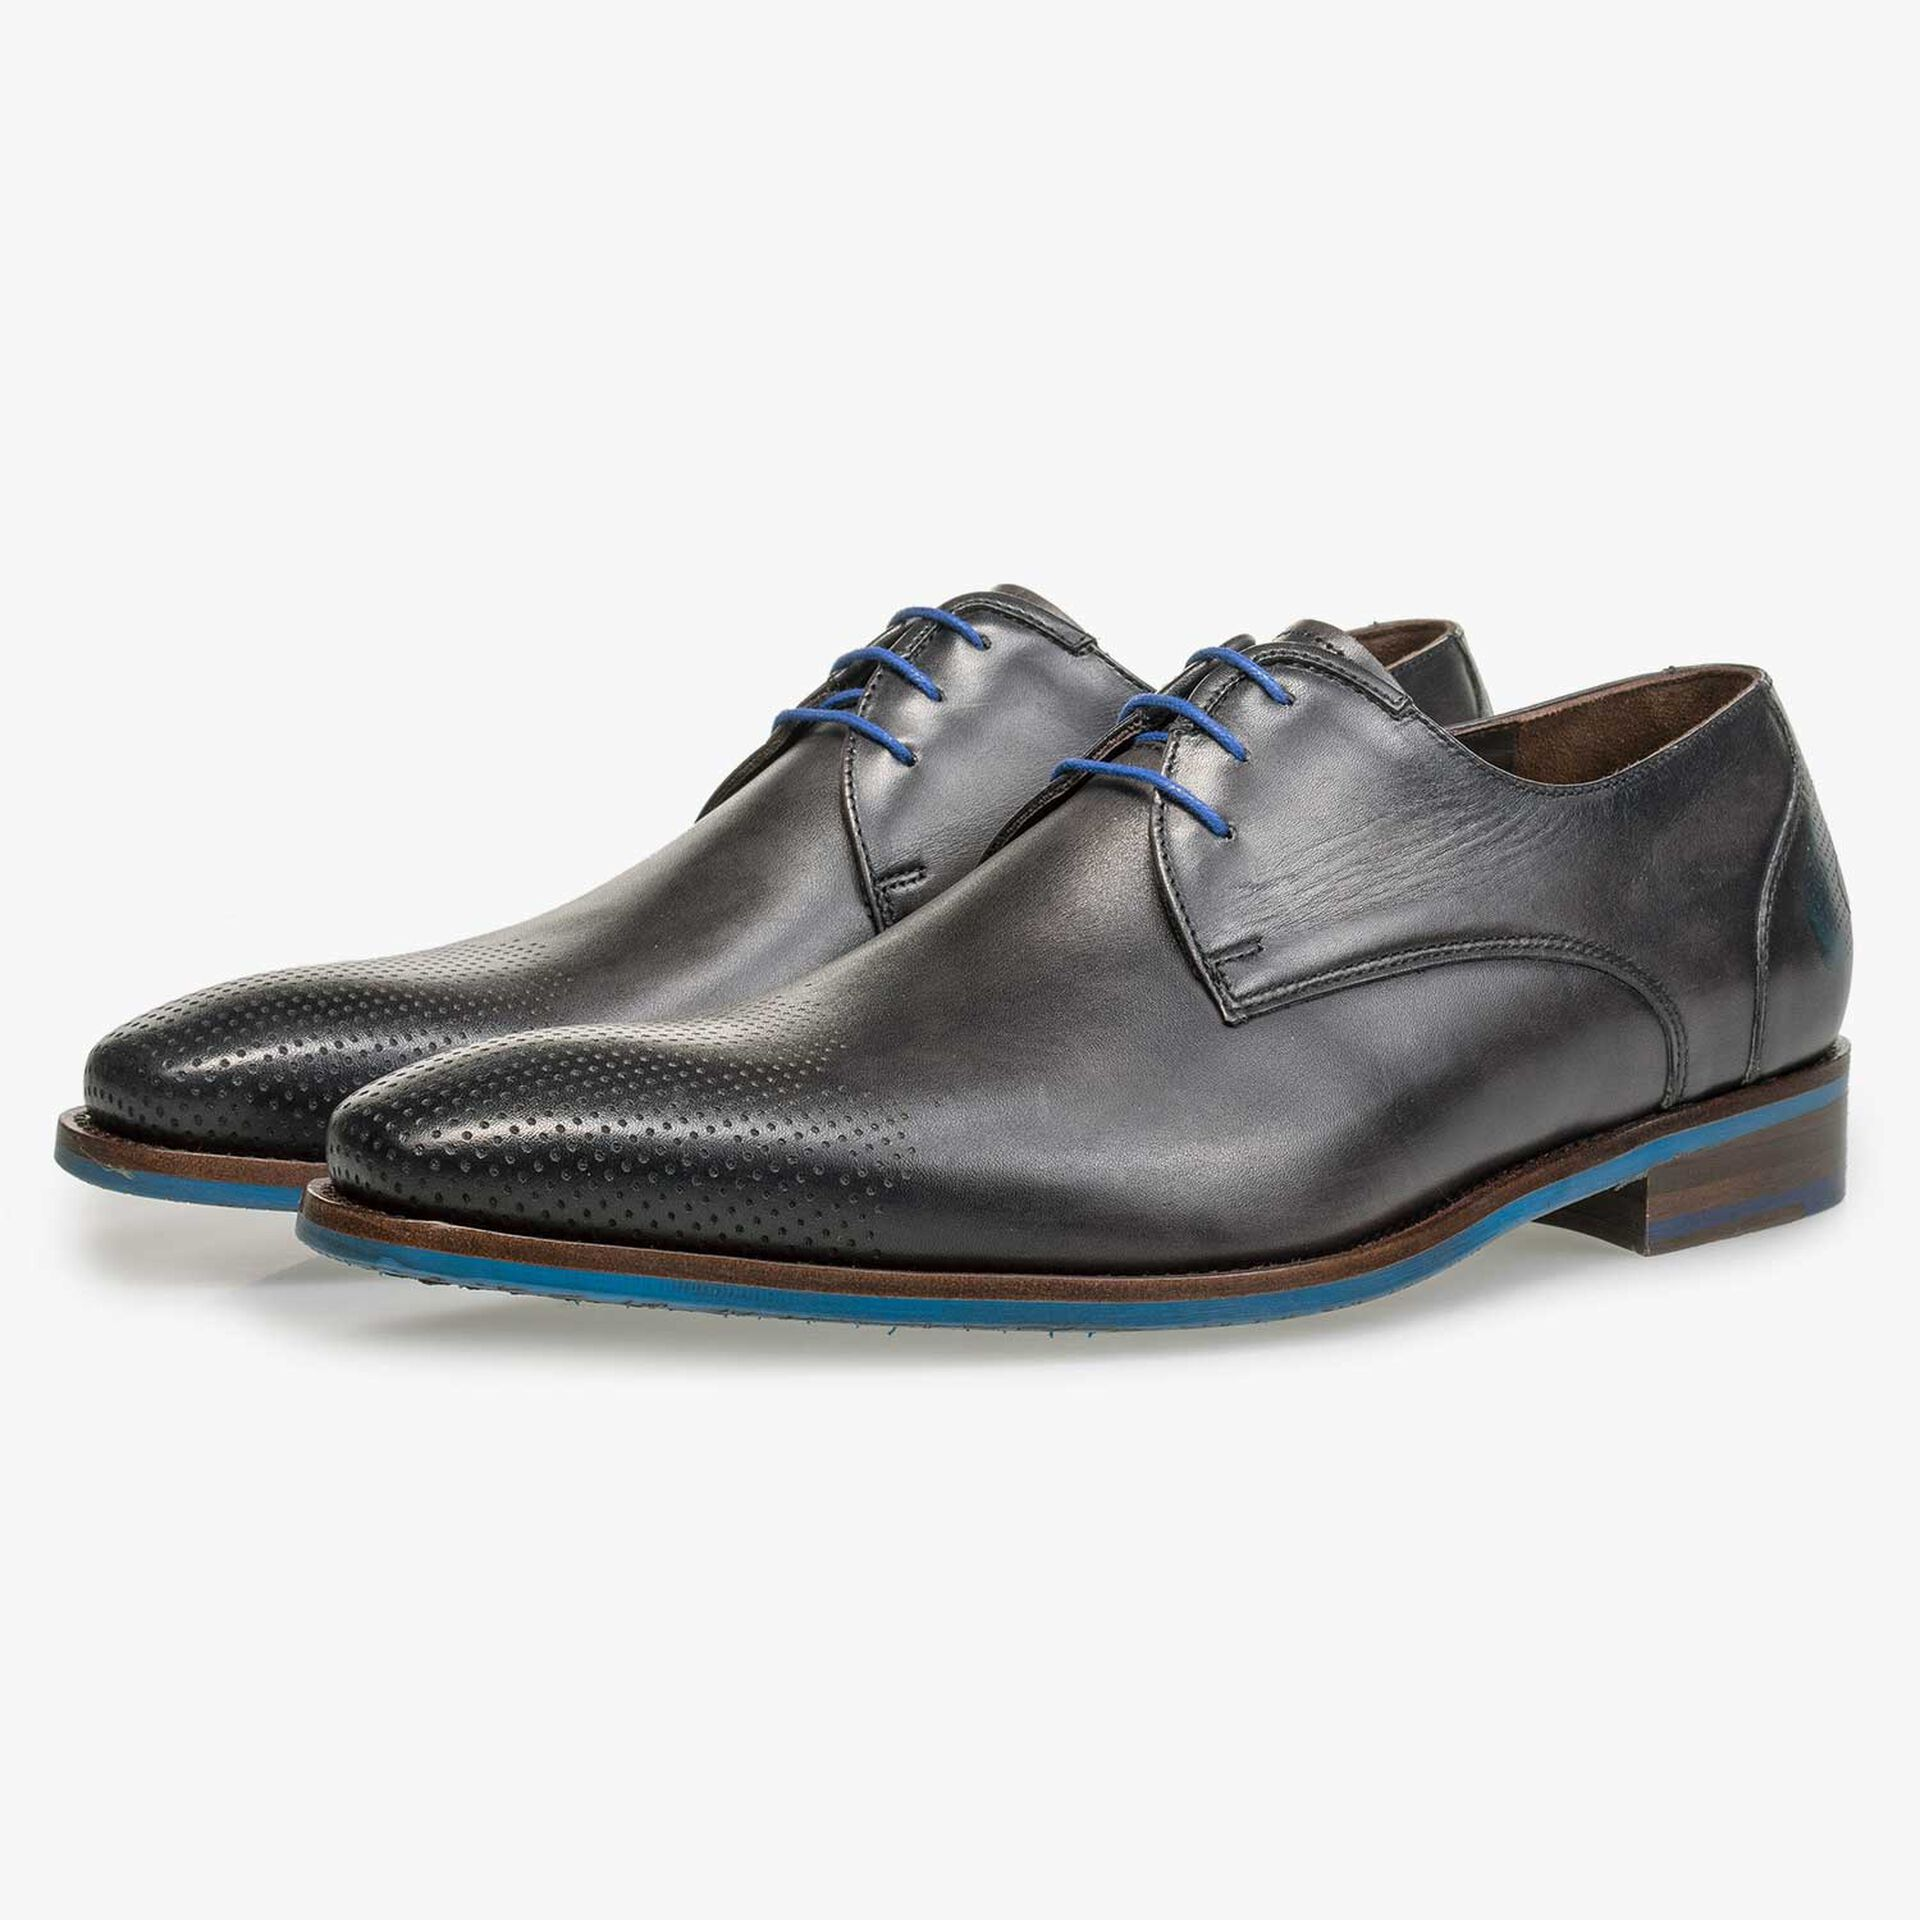 Grey patterned calf's leather lace shoe